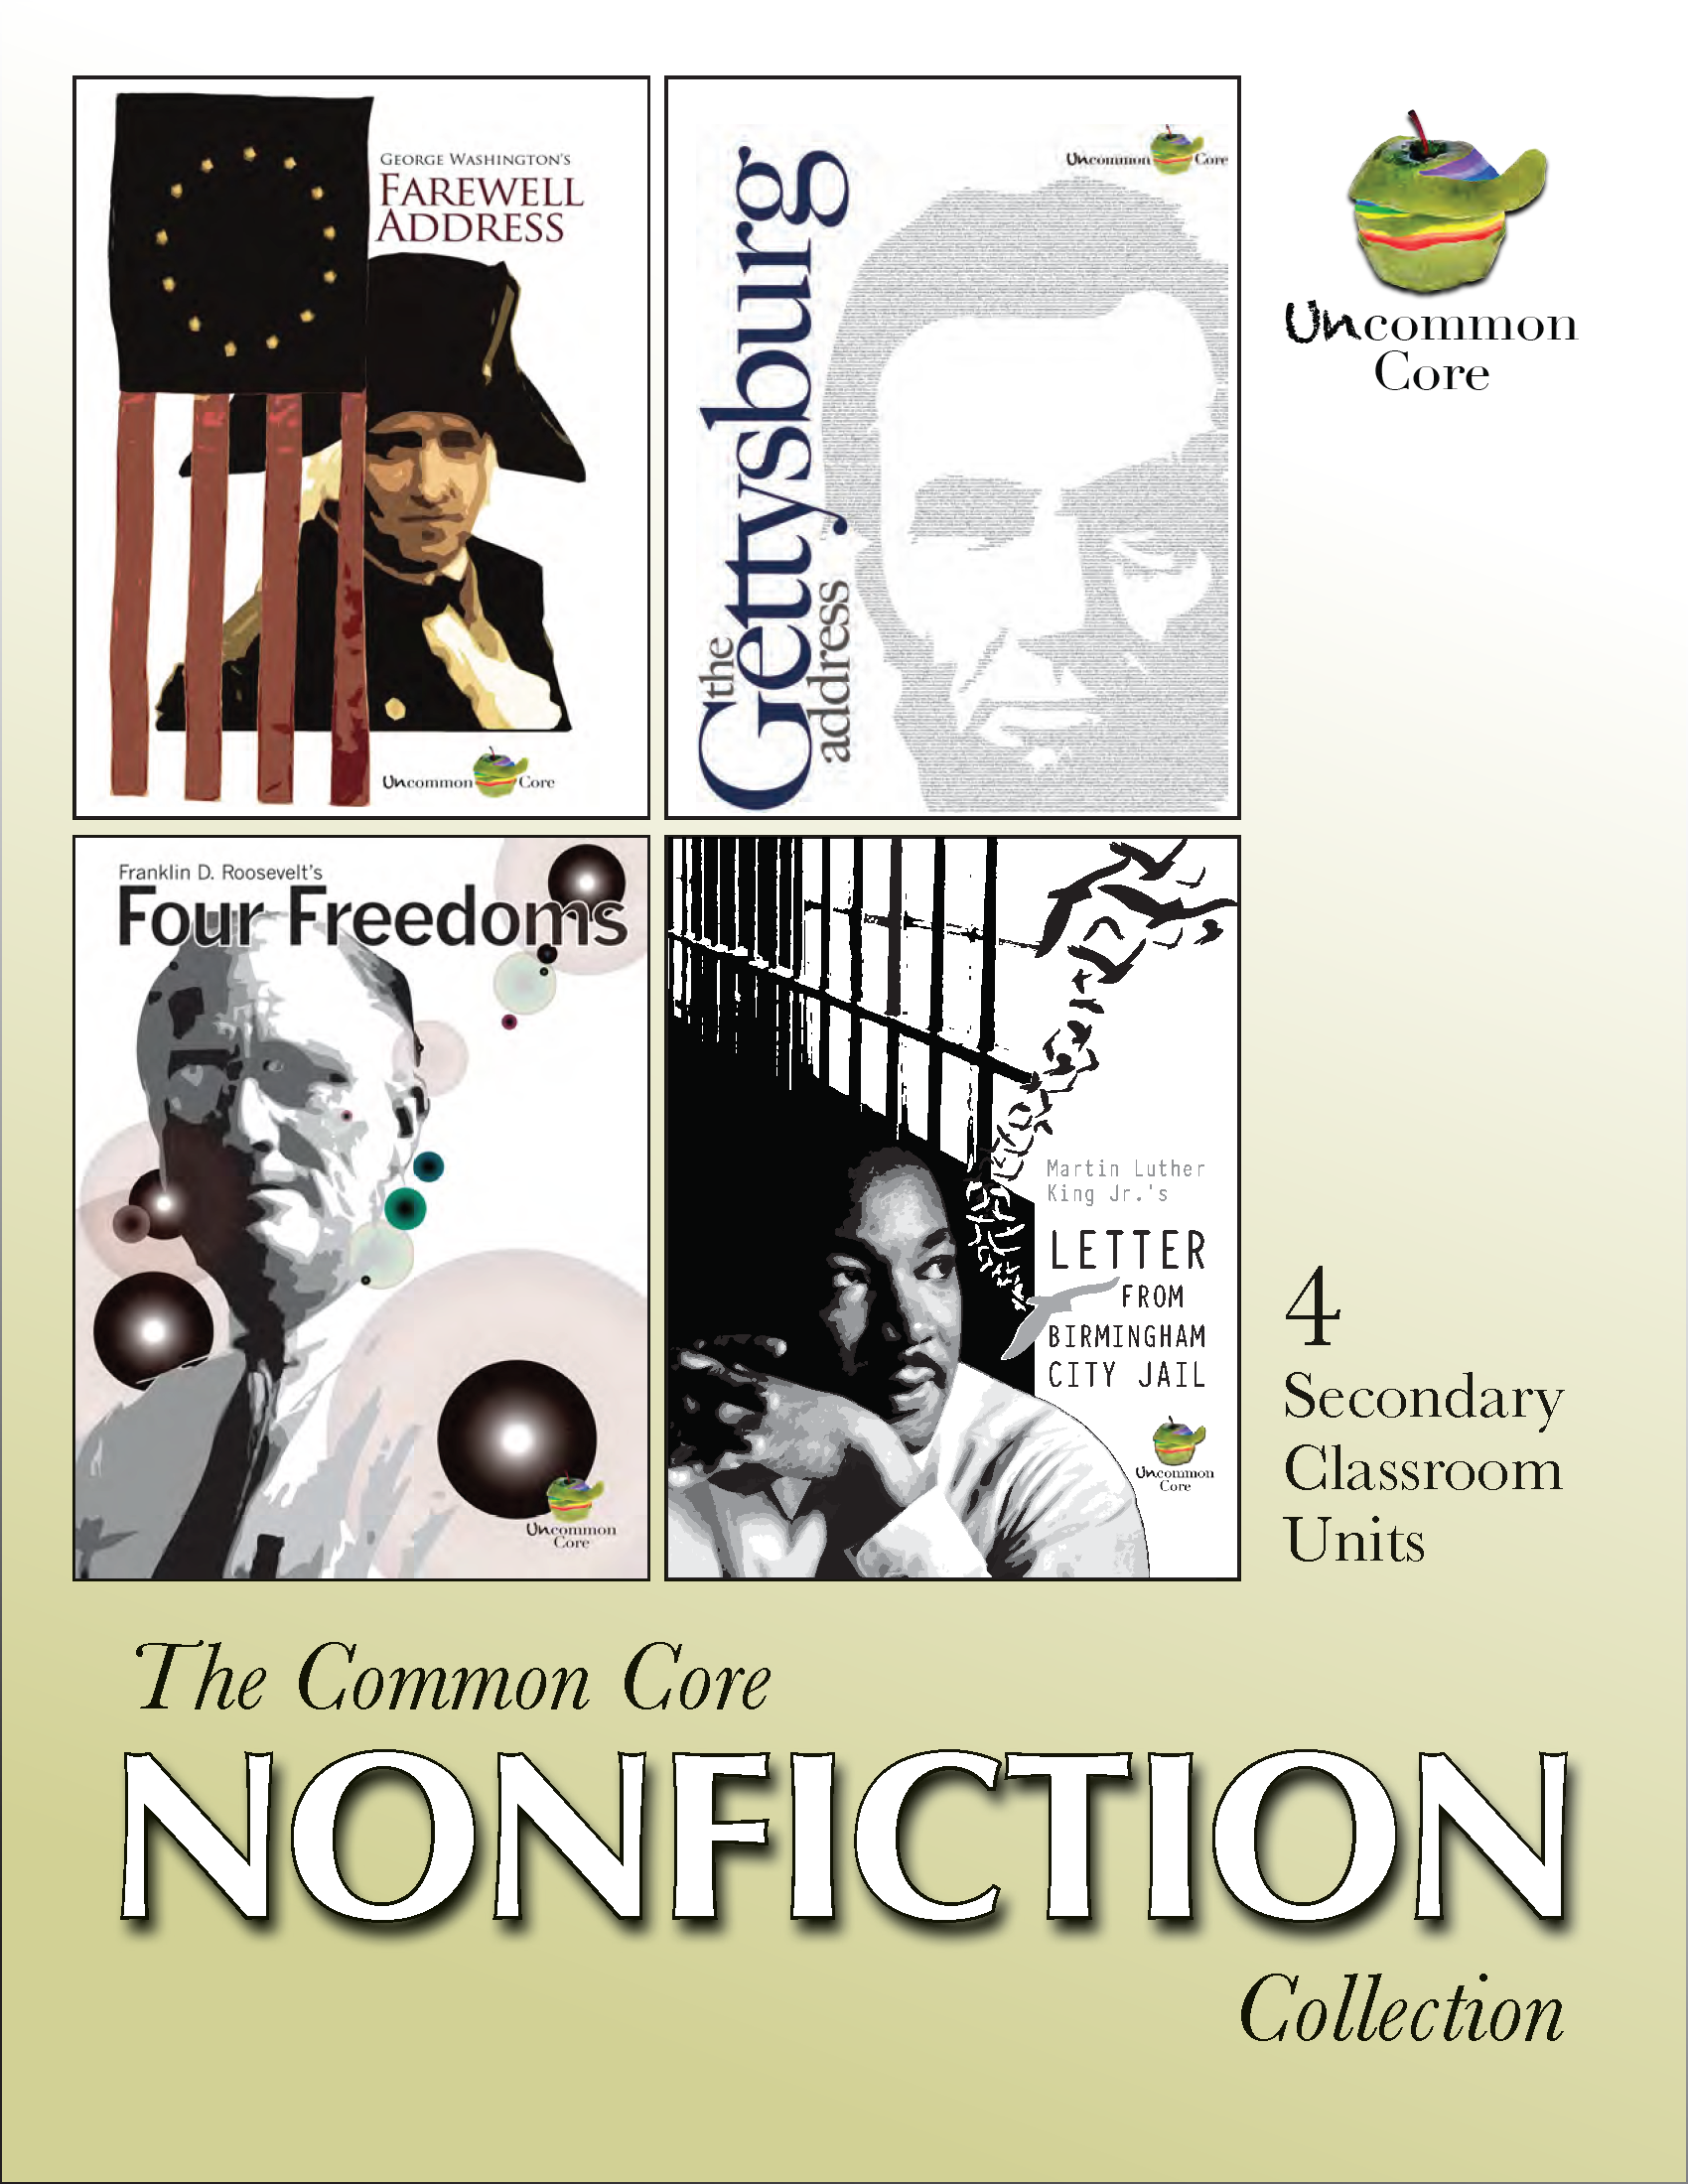 Nonfiction Collection